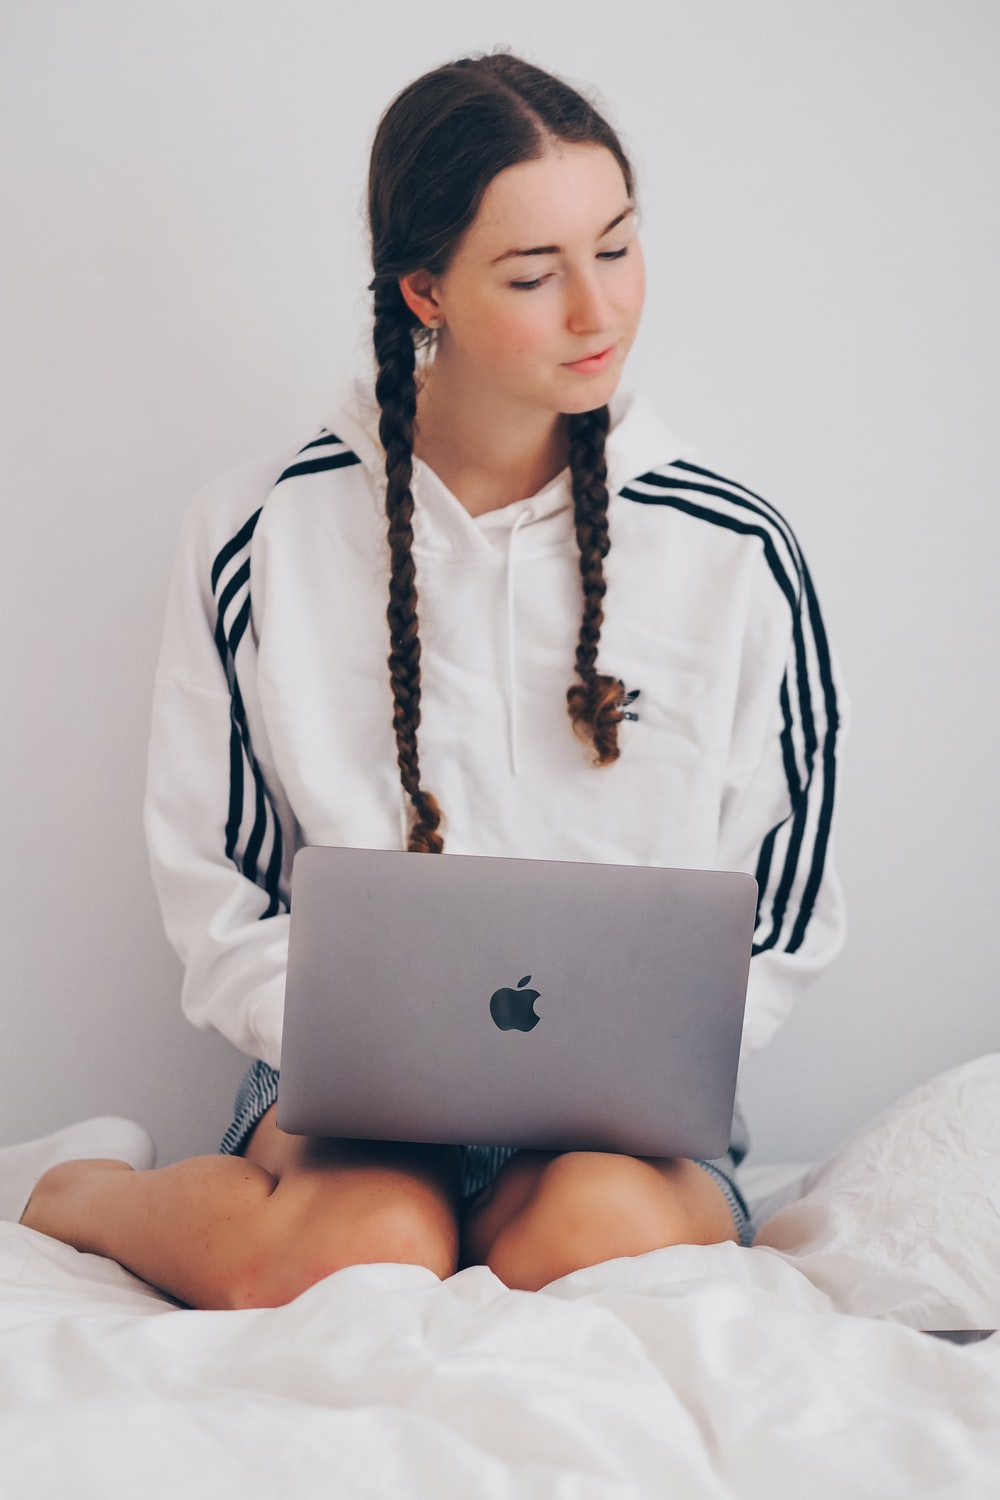 woman in white and black long sleeve shirt using silver macbook